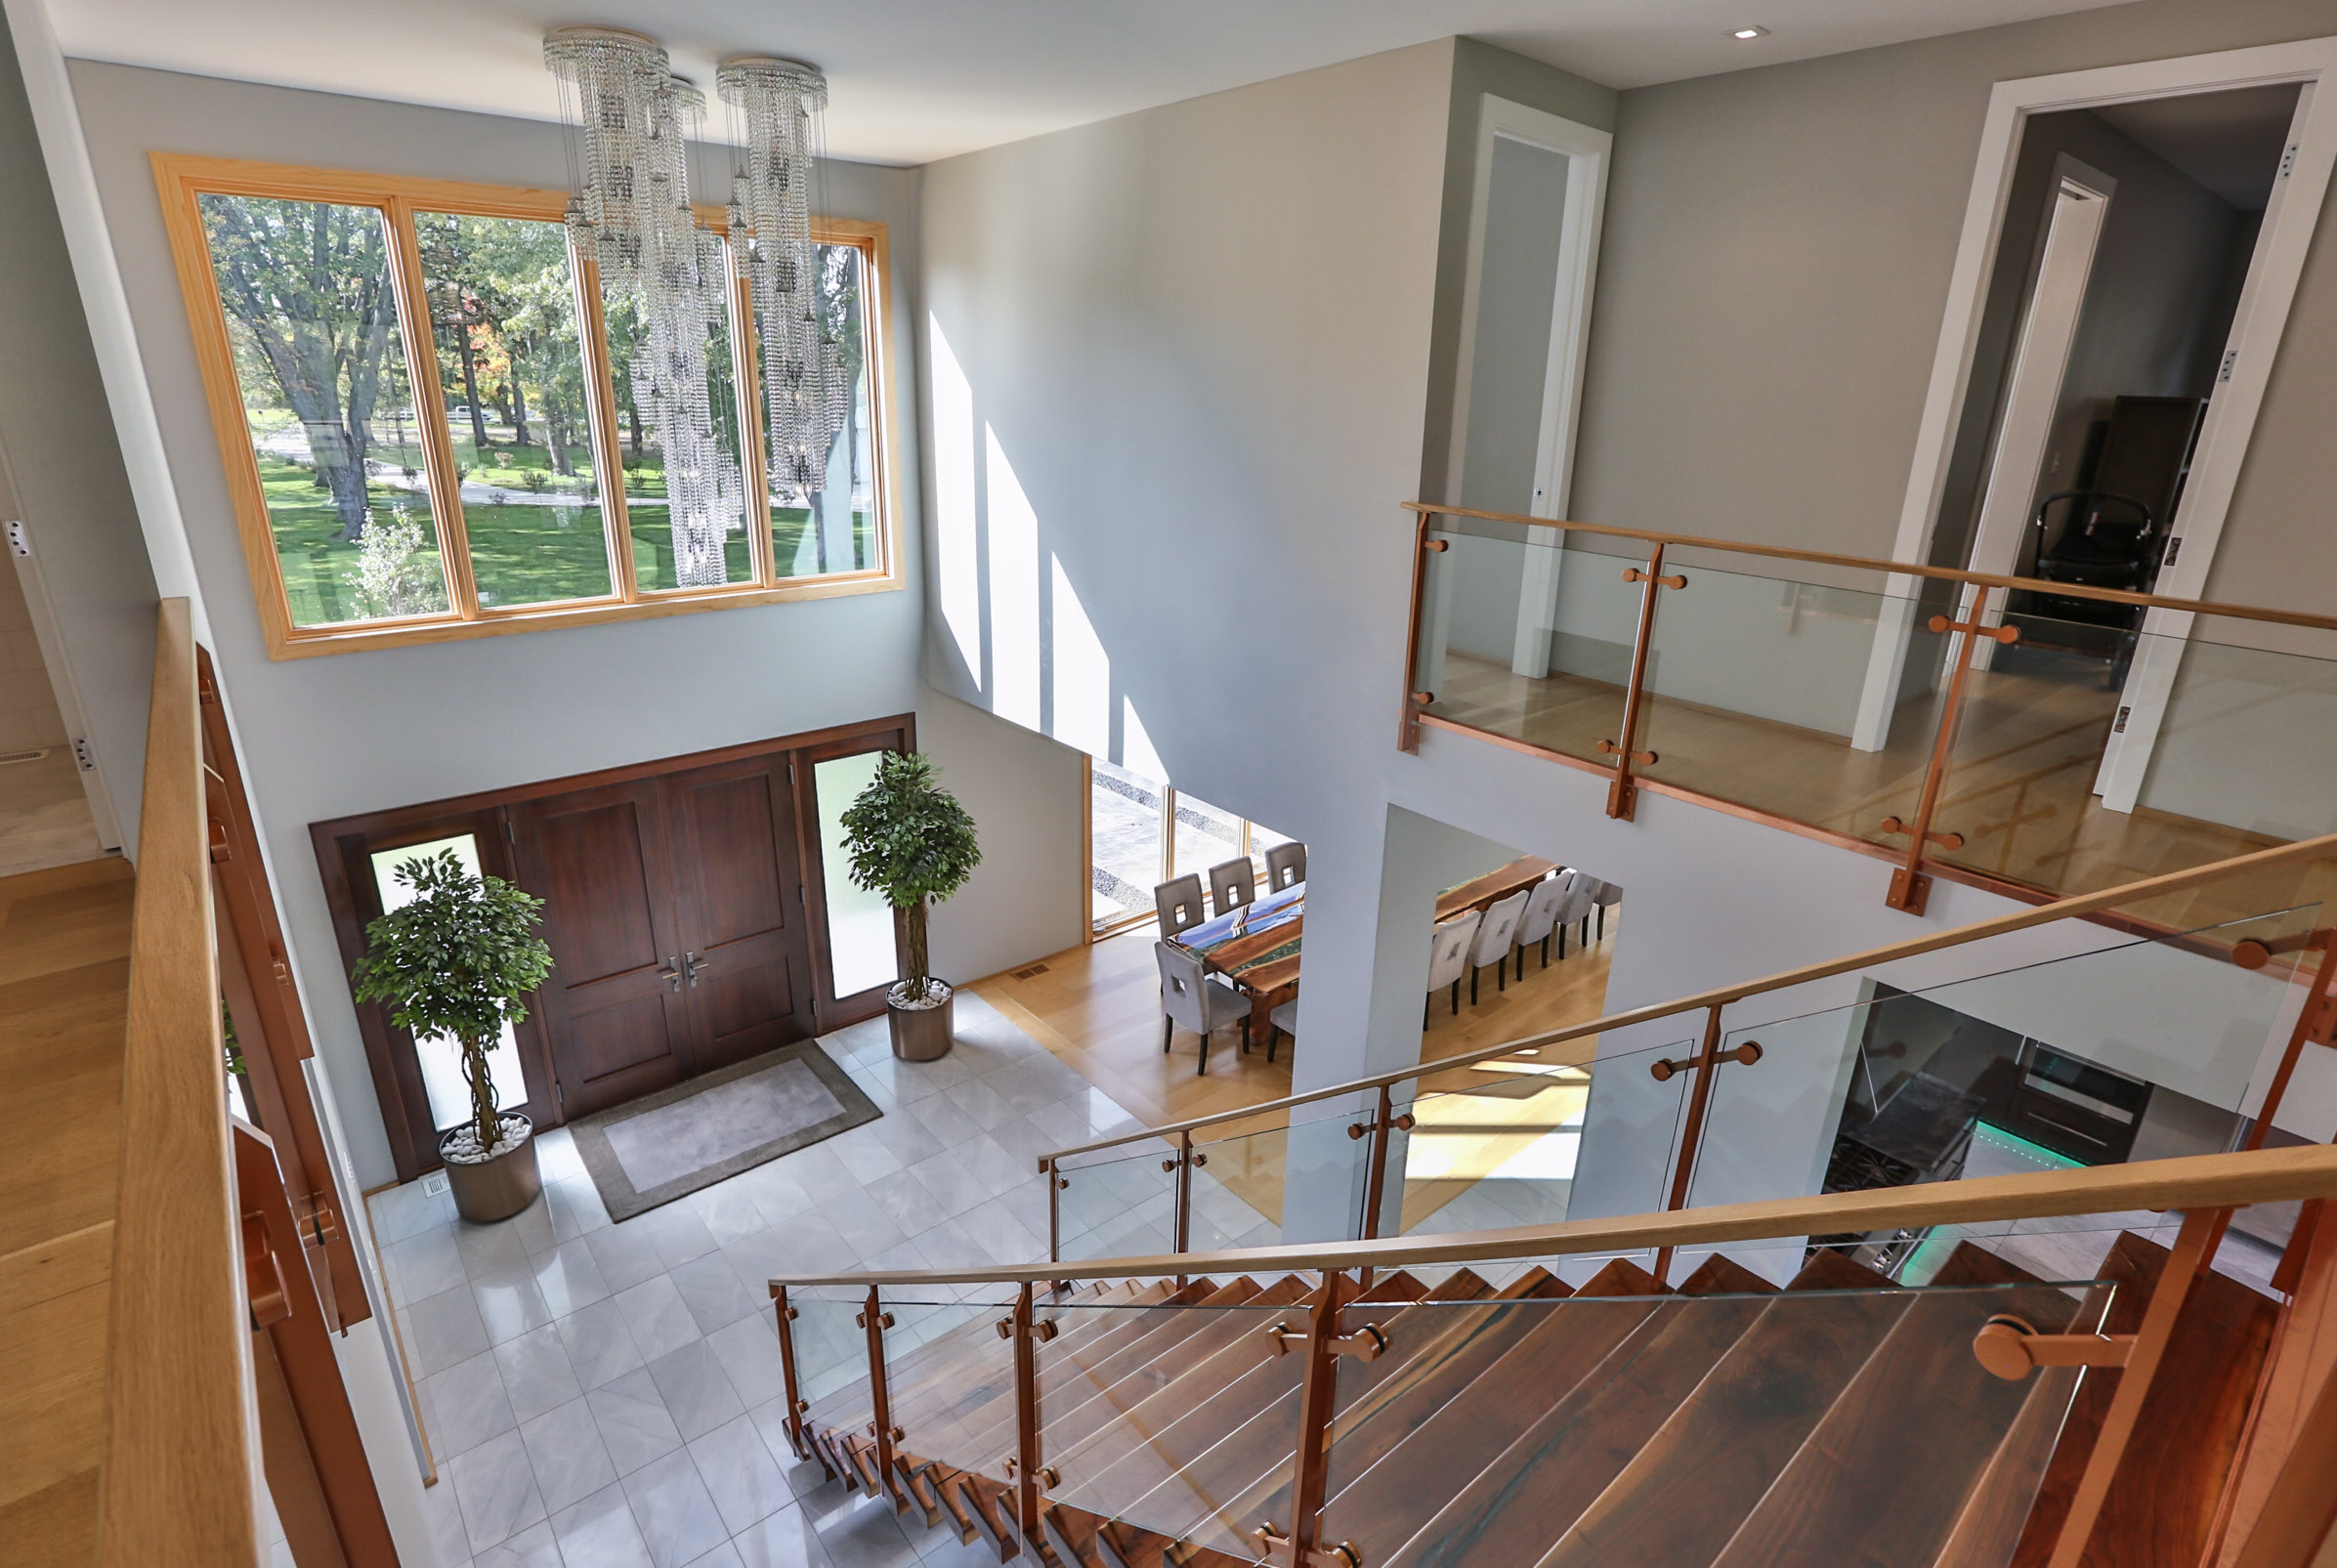 Grand entry with mono-stringer stairs